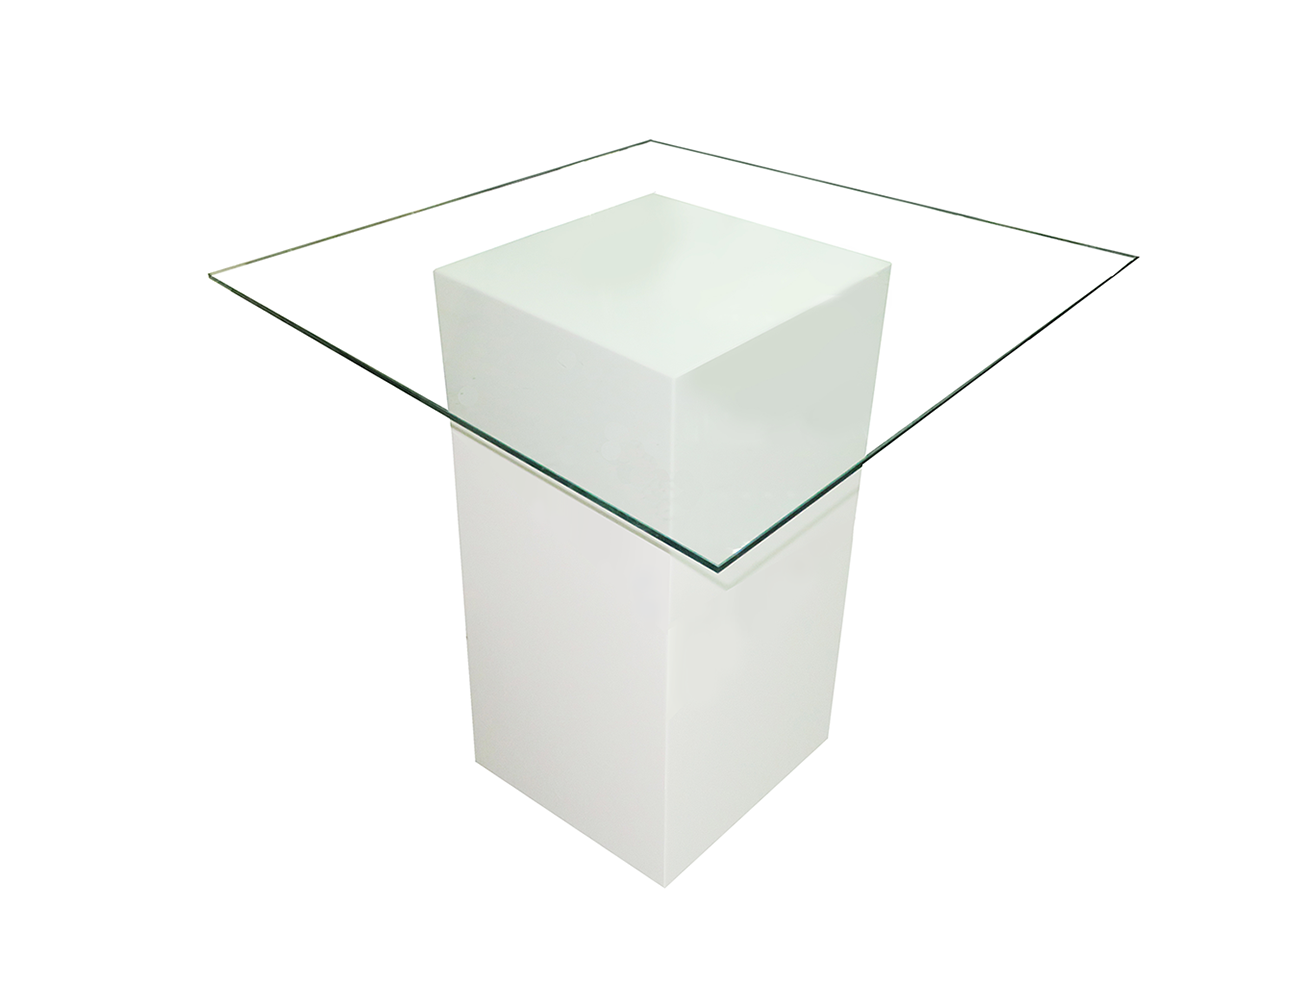 le minou square glass dining table. rent or buy le minou square glass dining table  event rental